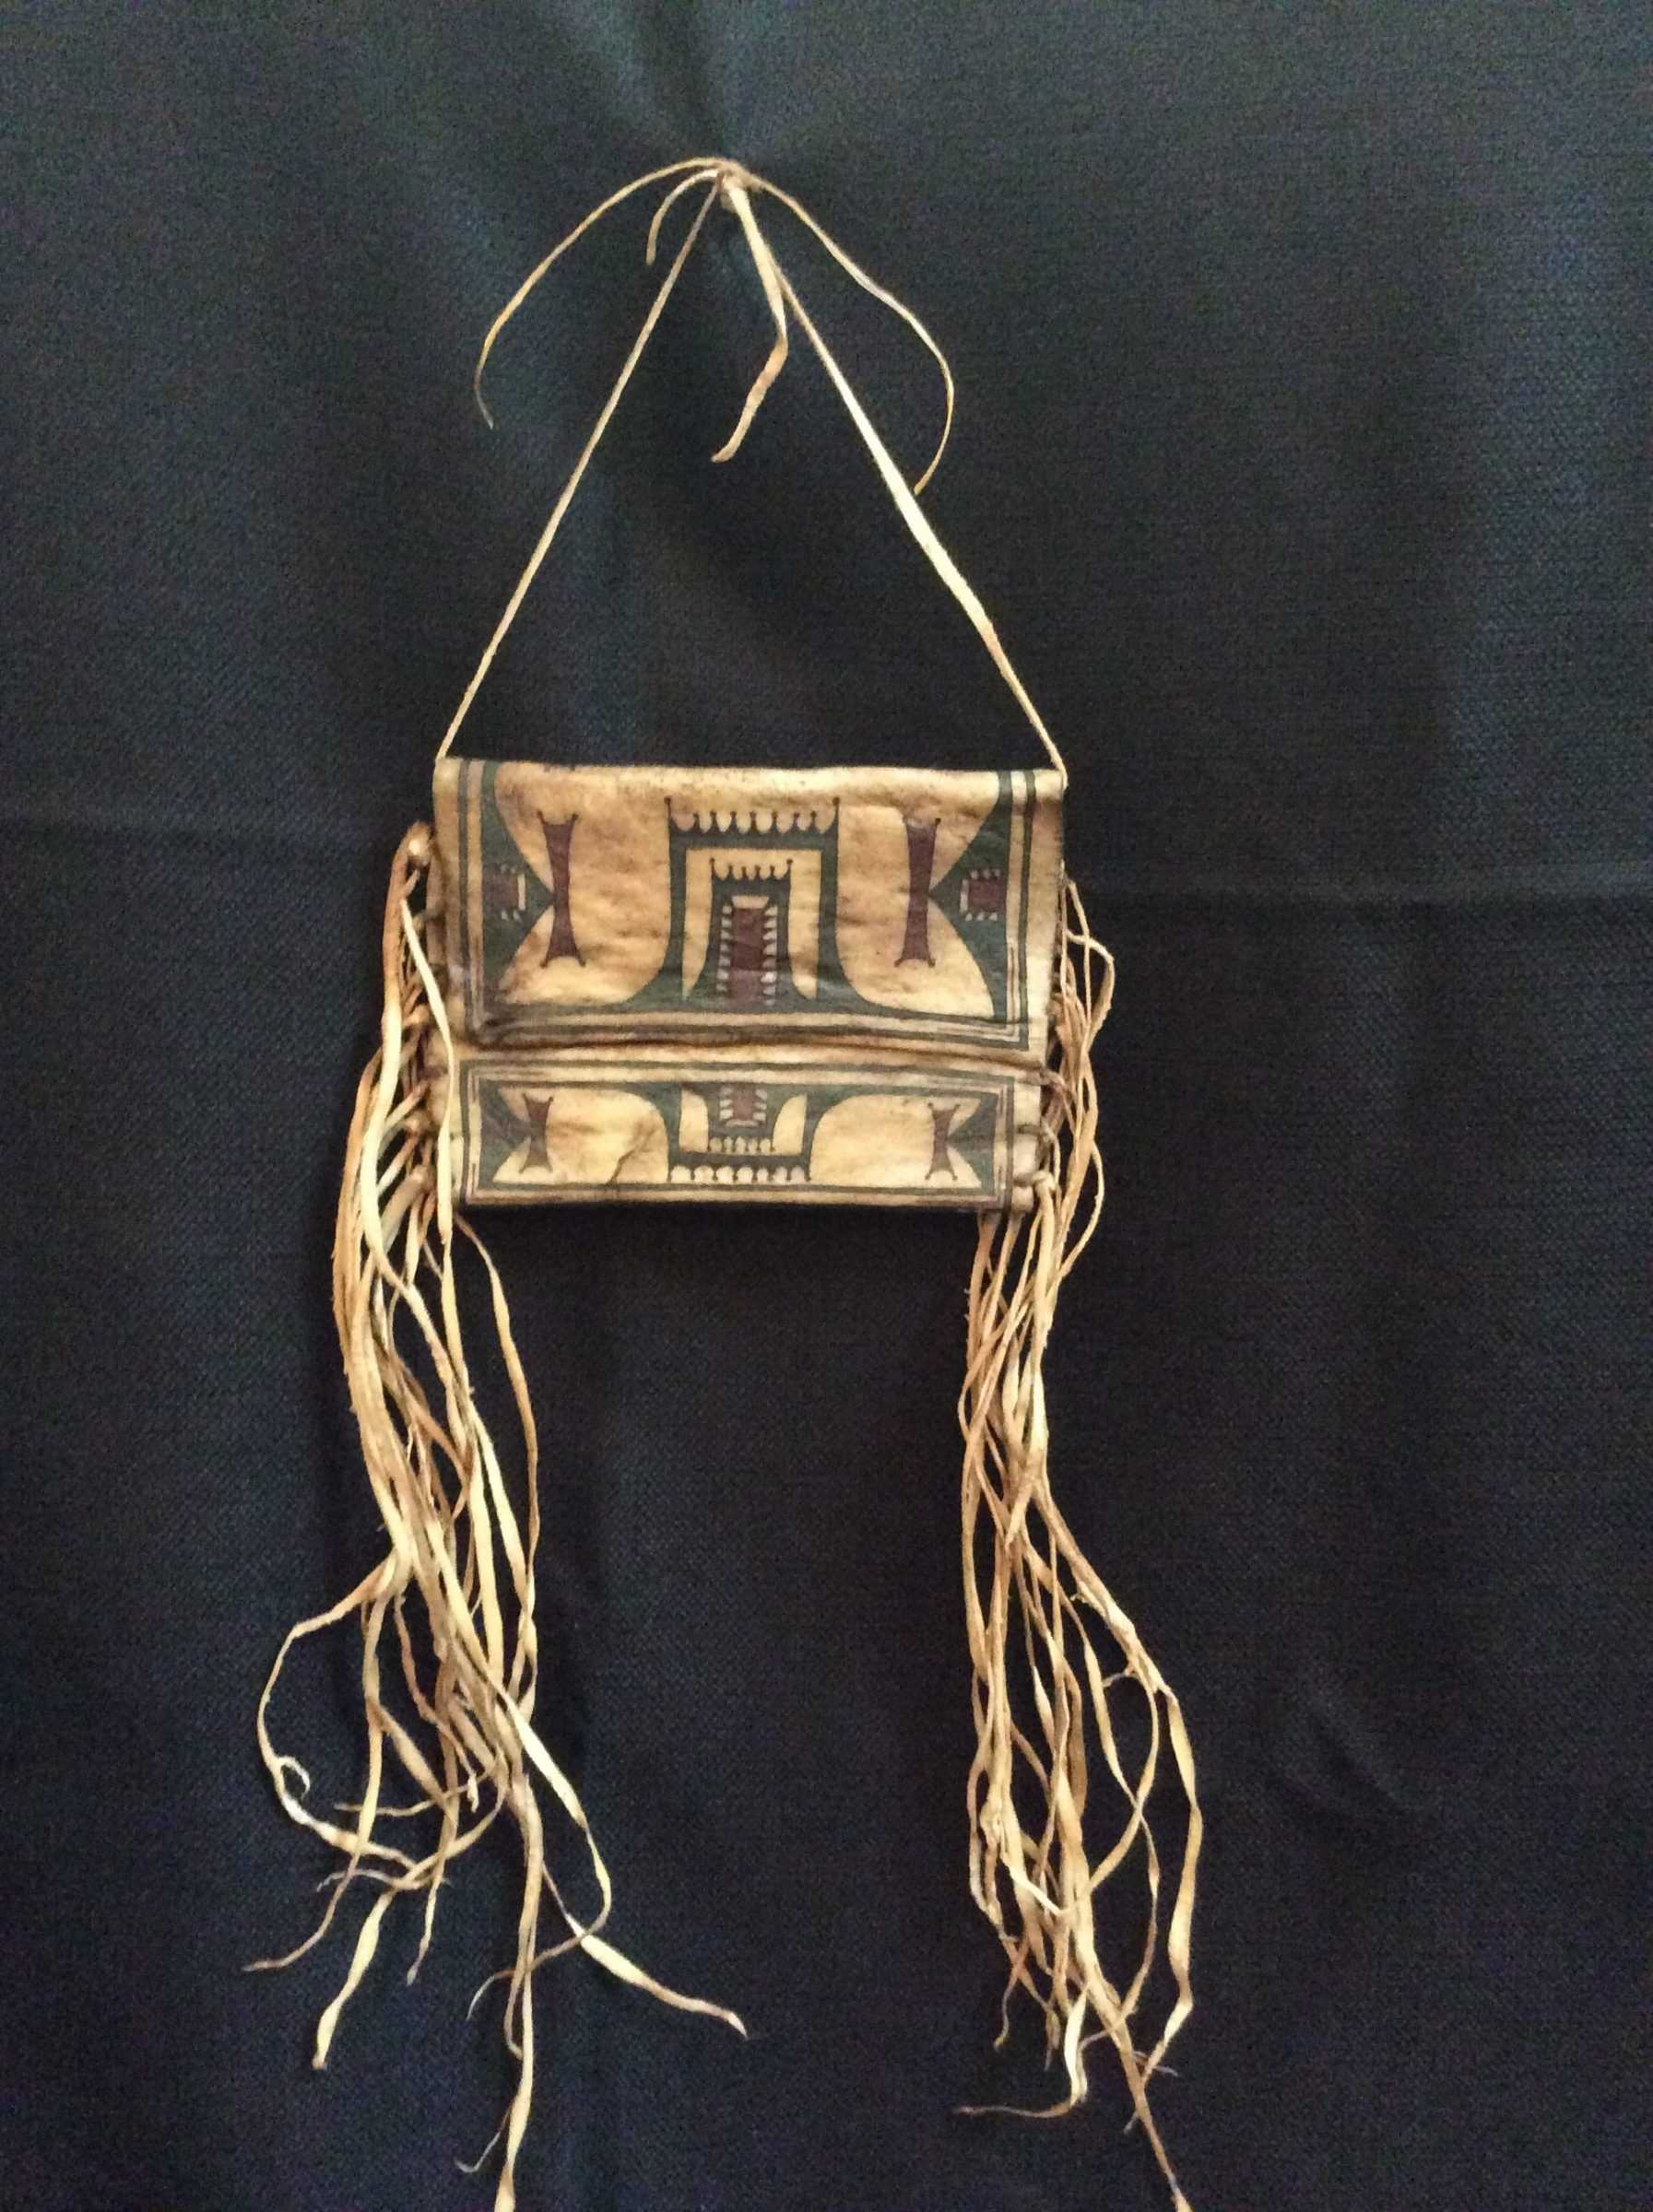 Native American design bag with fringe